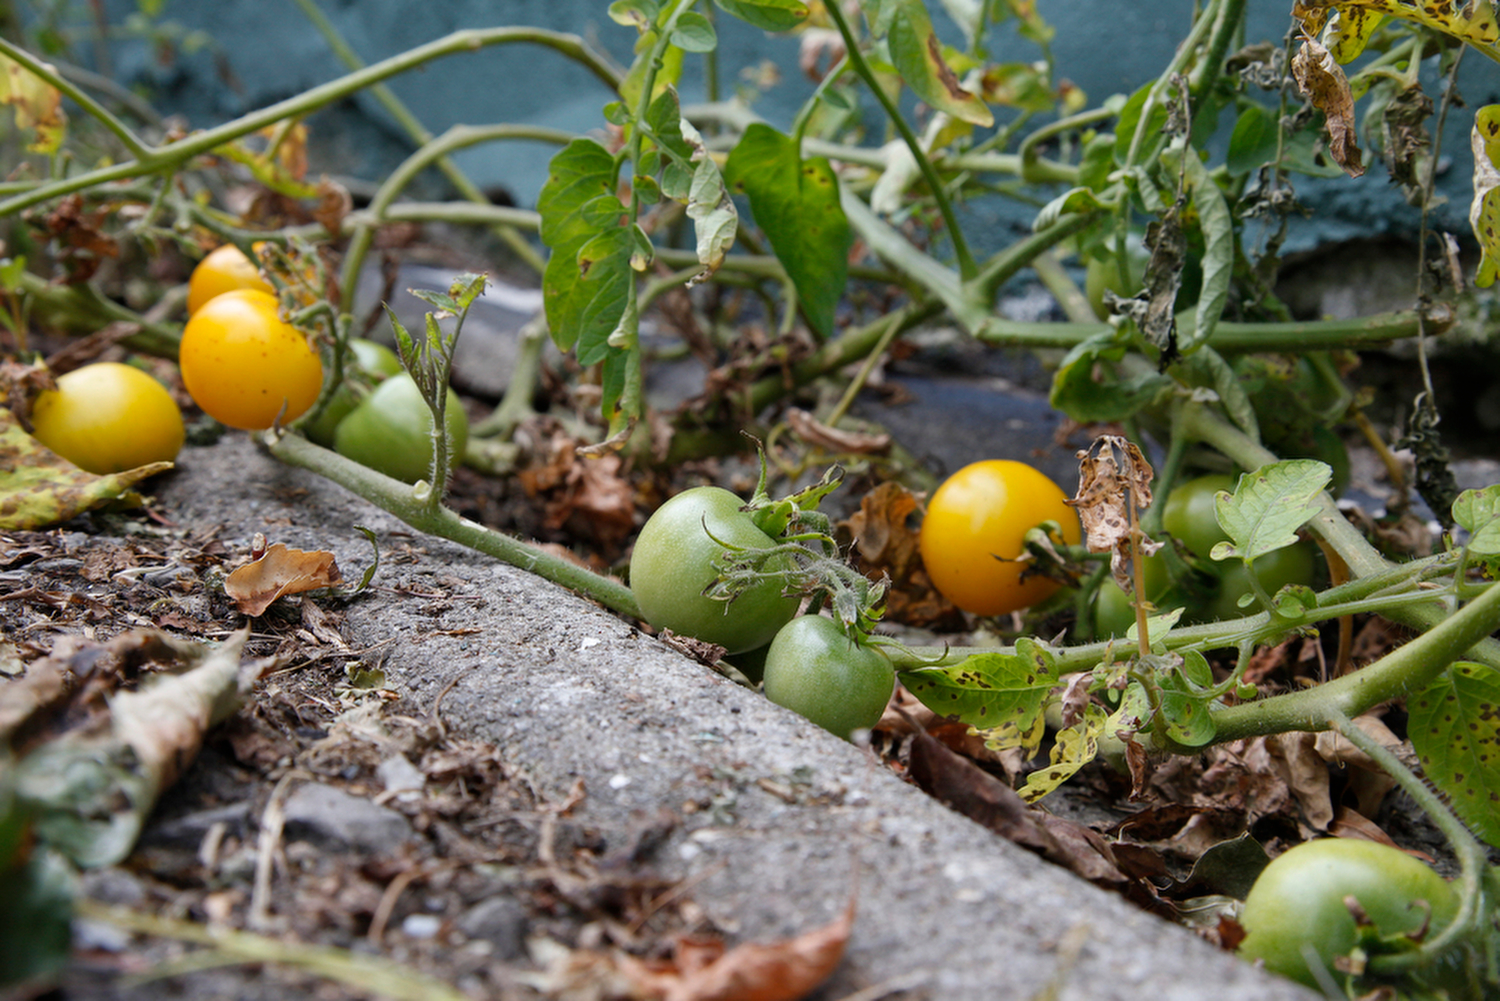 "Sweet cherry tomatoes are growing in the drainage ditch between the greenhouse and the parking lot at the Seedfolk City Farm location behind the Greenhouse Cafe, Rochester, N.Y., Aug., 28, 2015. ""Life finds a way."""